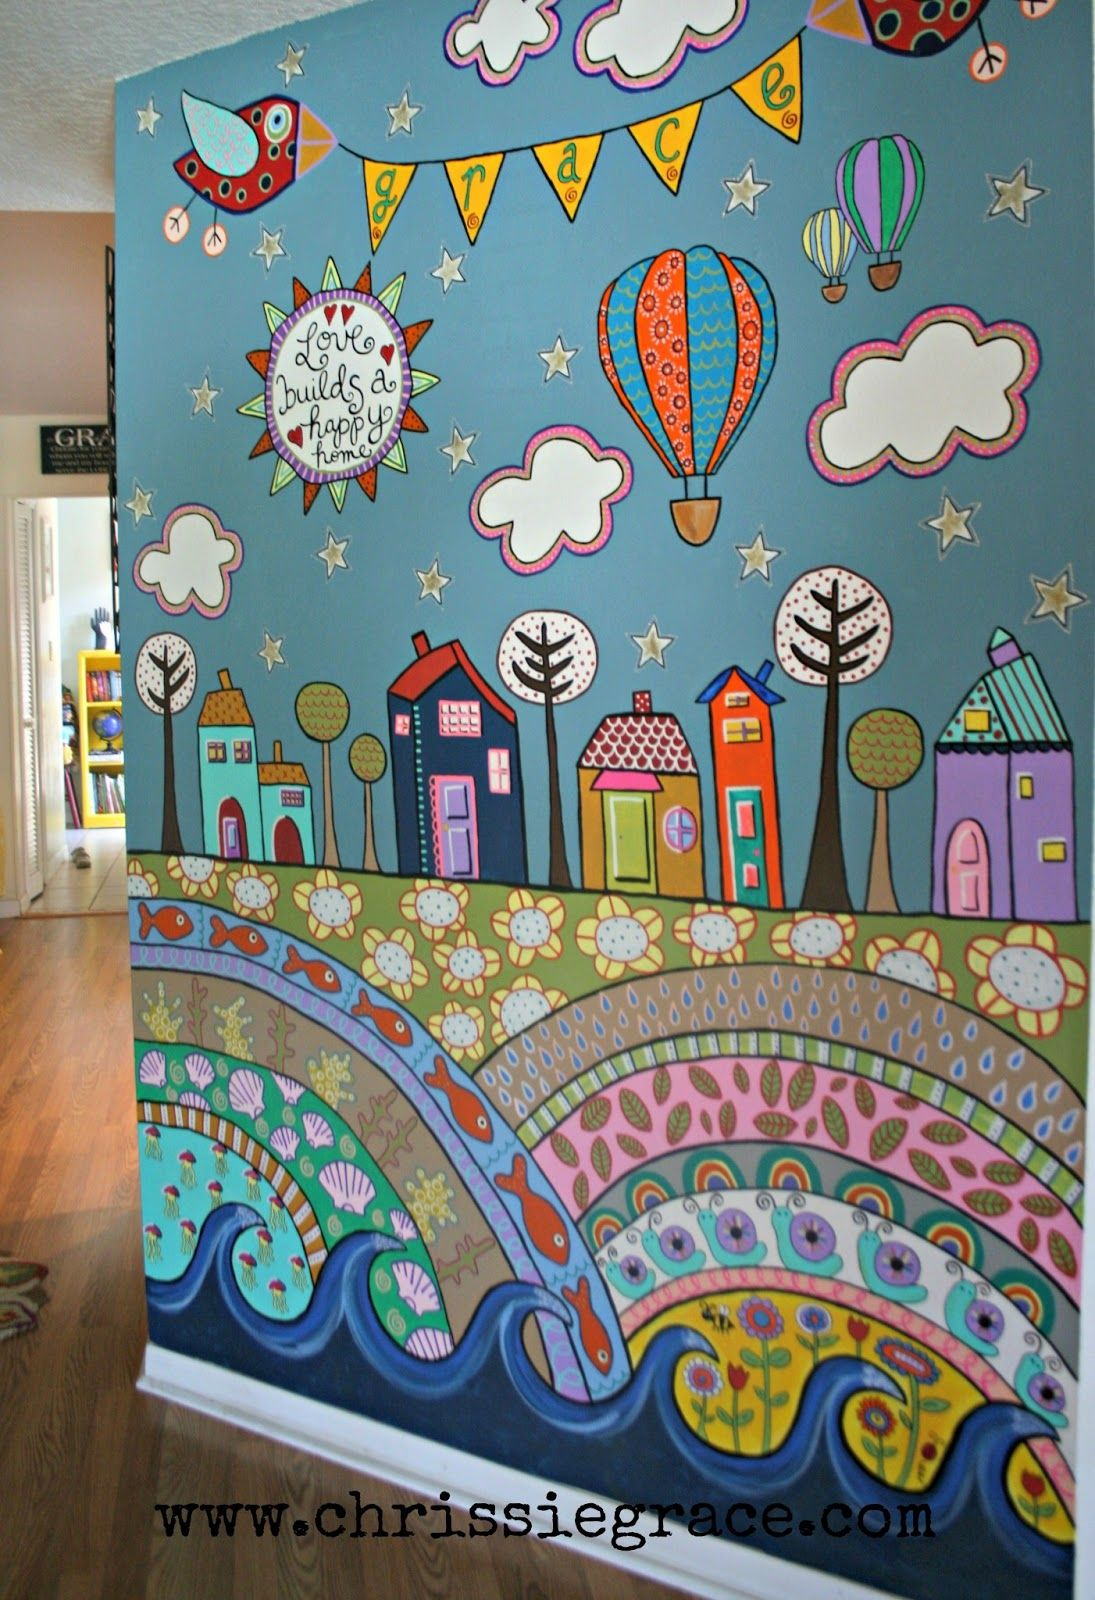 Painted Wall Mural Using Acrylic Craft Paints:)   Playroom   School